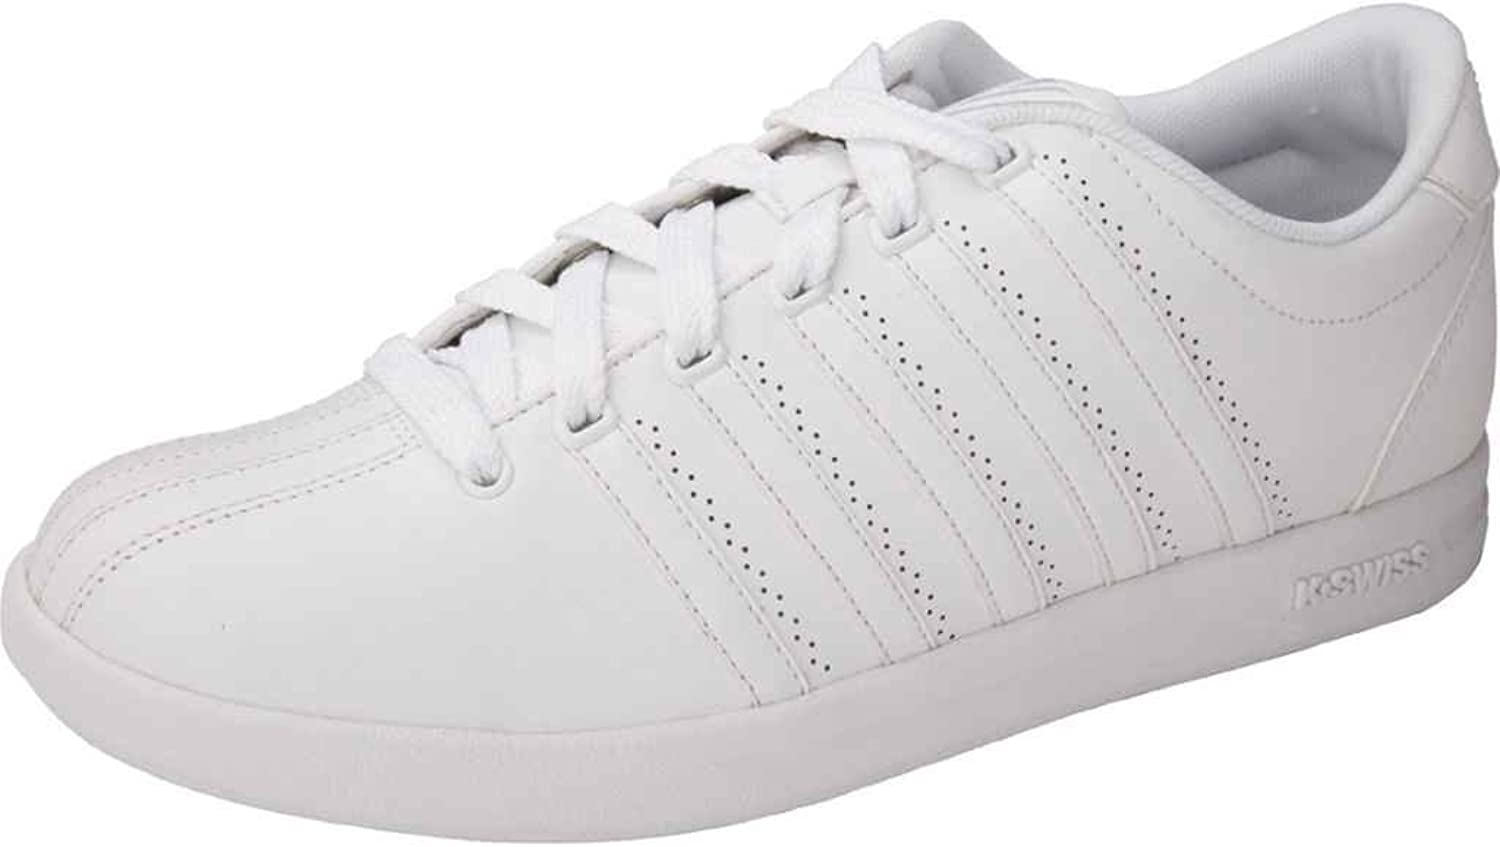 K-Swiss MCMFCOURTPRO Men's Court Pro CMF shoes White